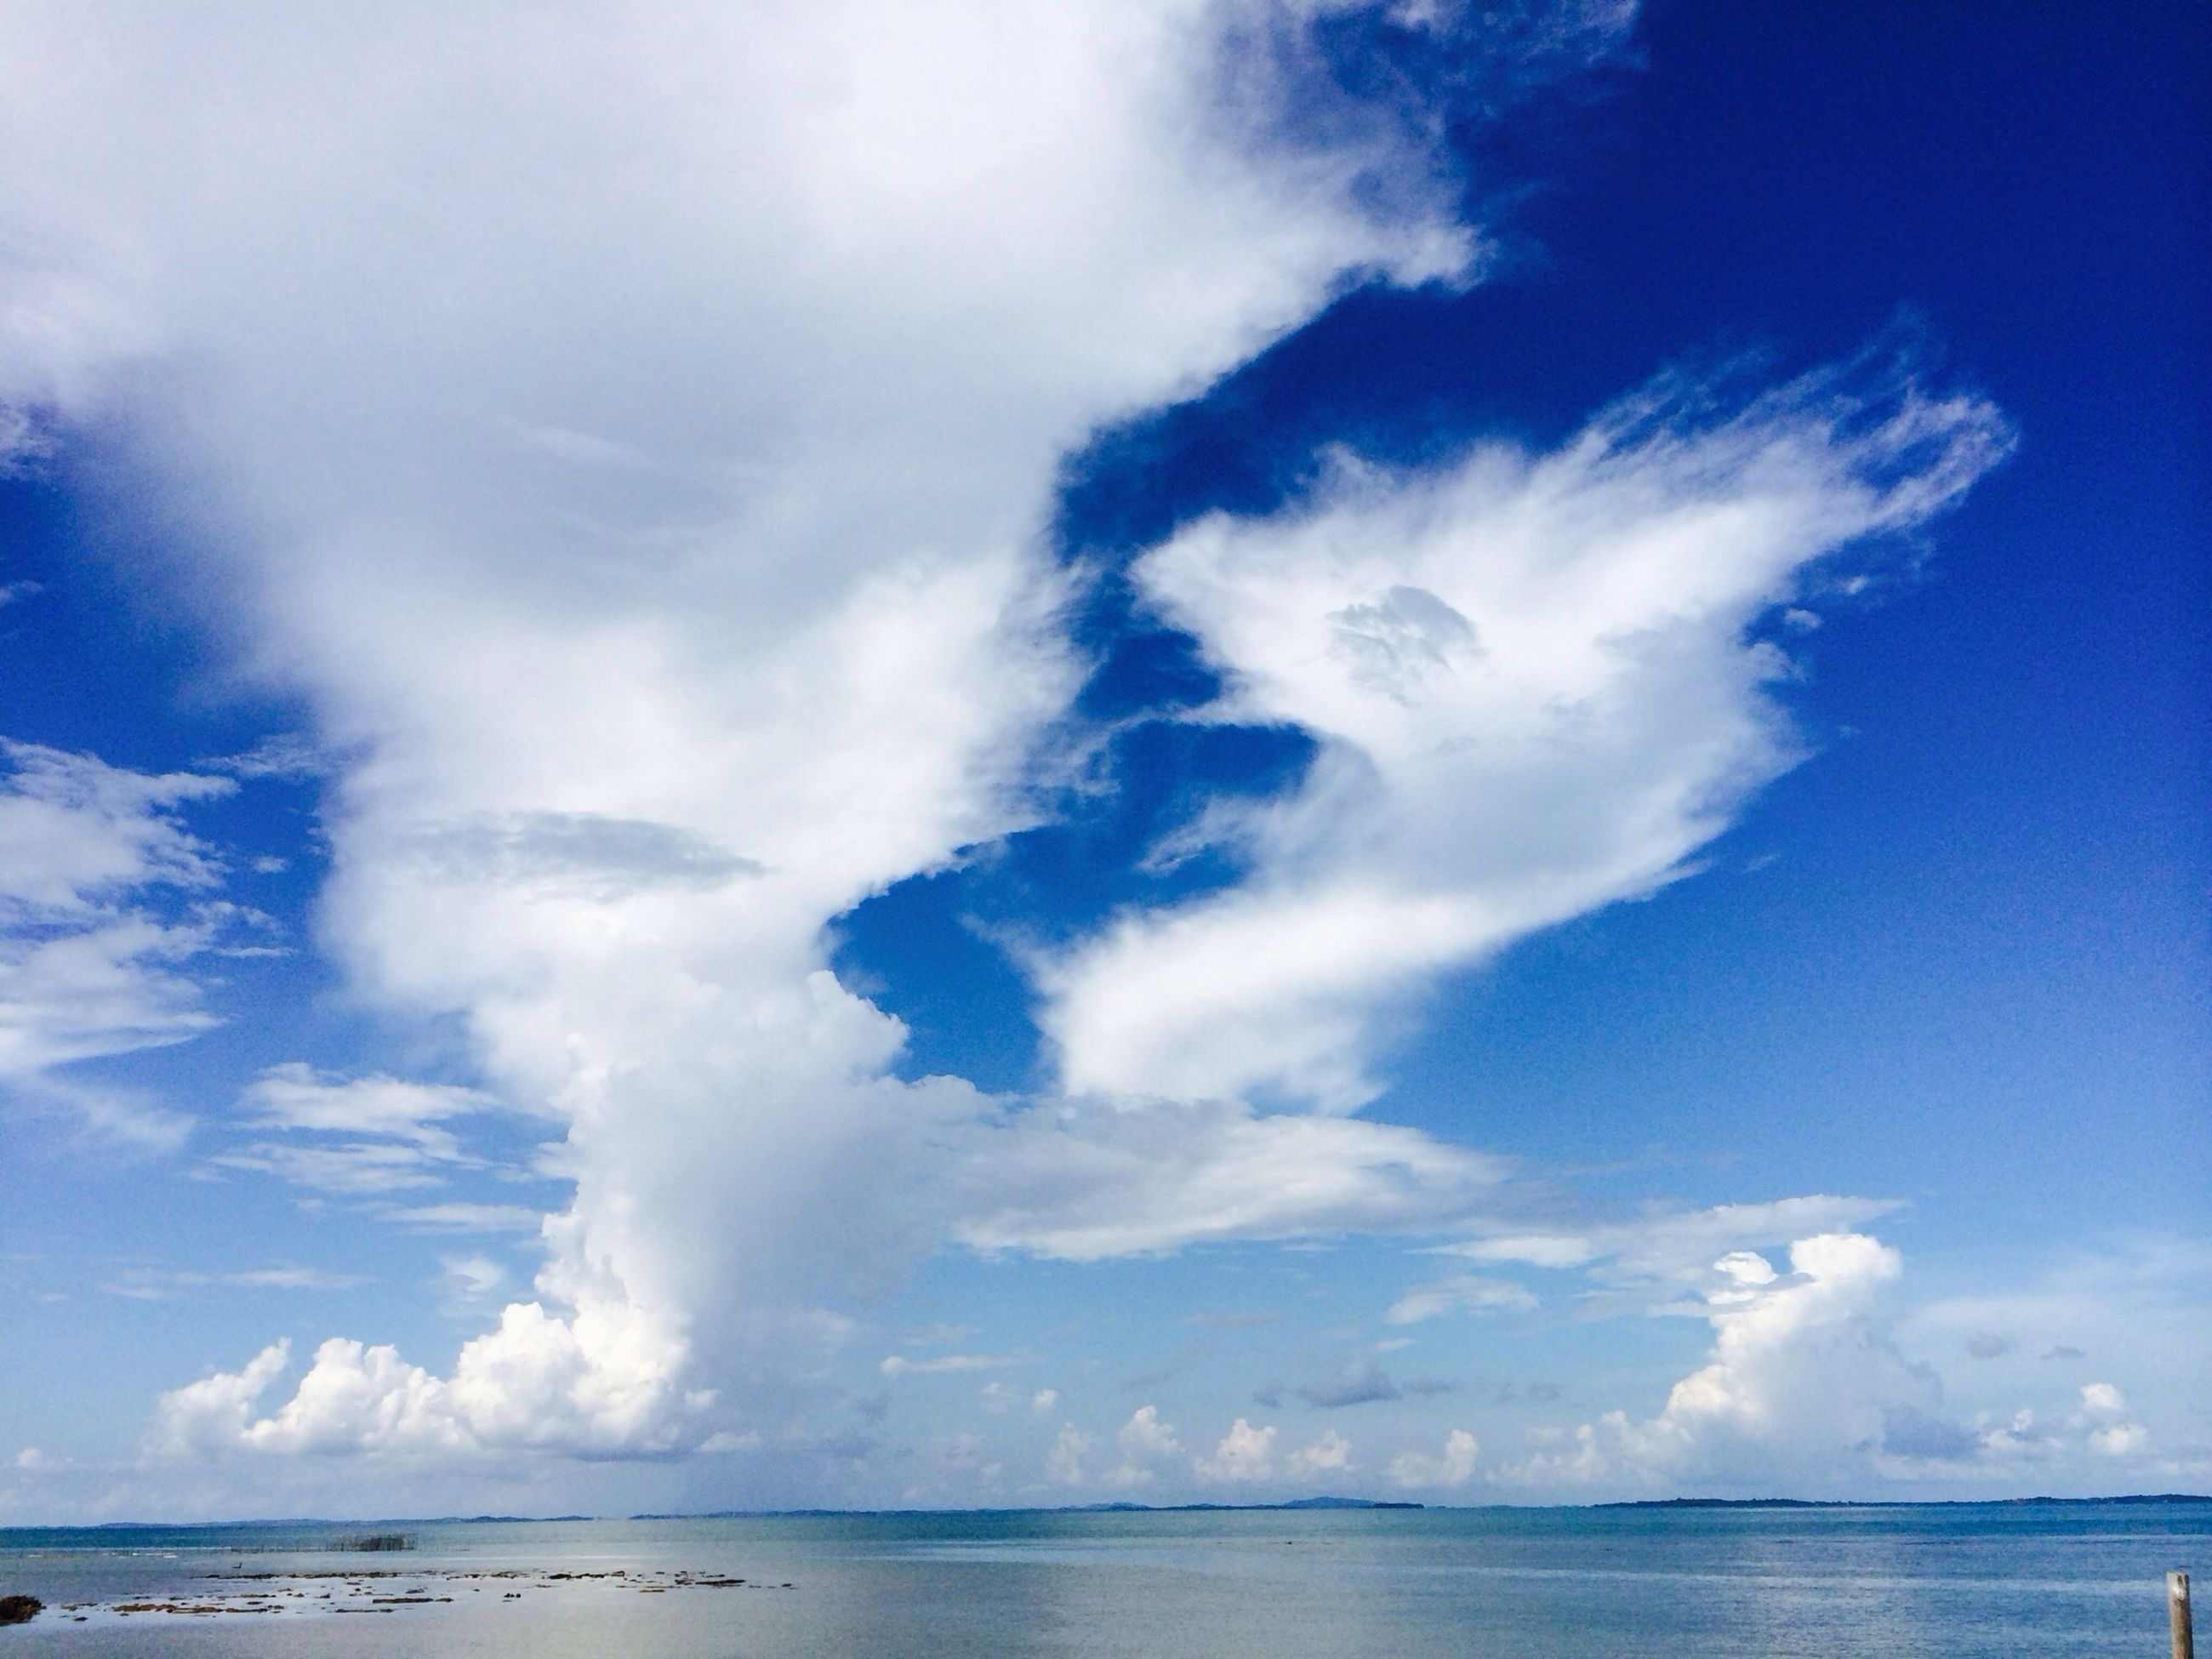 sea, sky, water, horizon over water, tranquil scene, tranquility, scenics, beauty in nature, blue, cloud - sky, nature, cloud, waterfront, cloudy, beach, idyllic, seascape, day, calm, shore